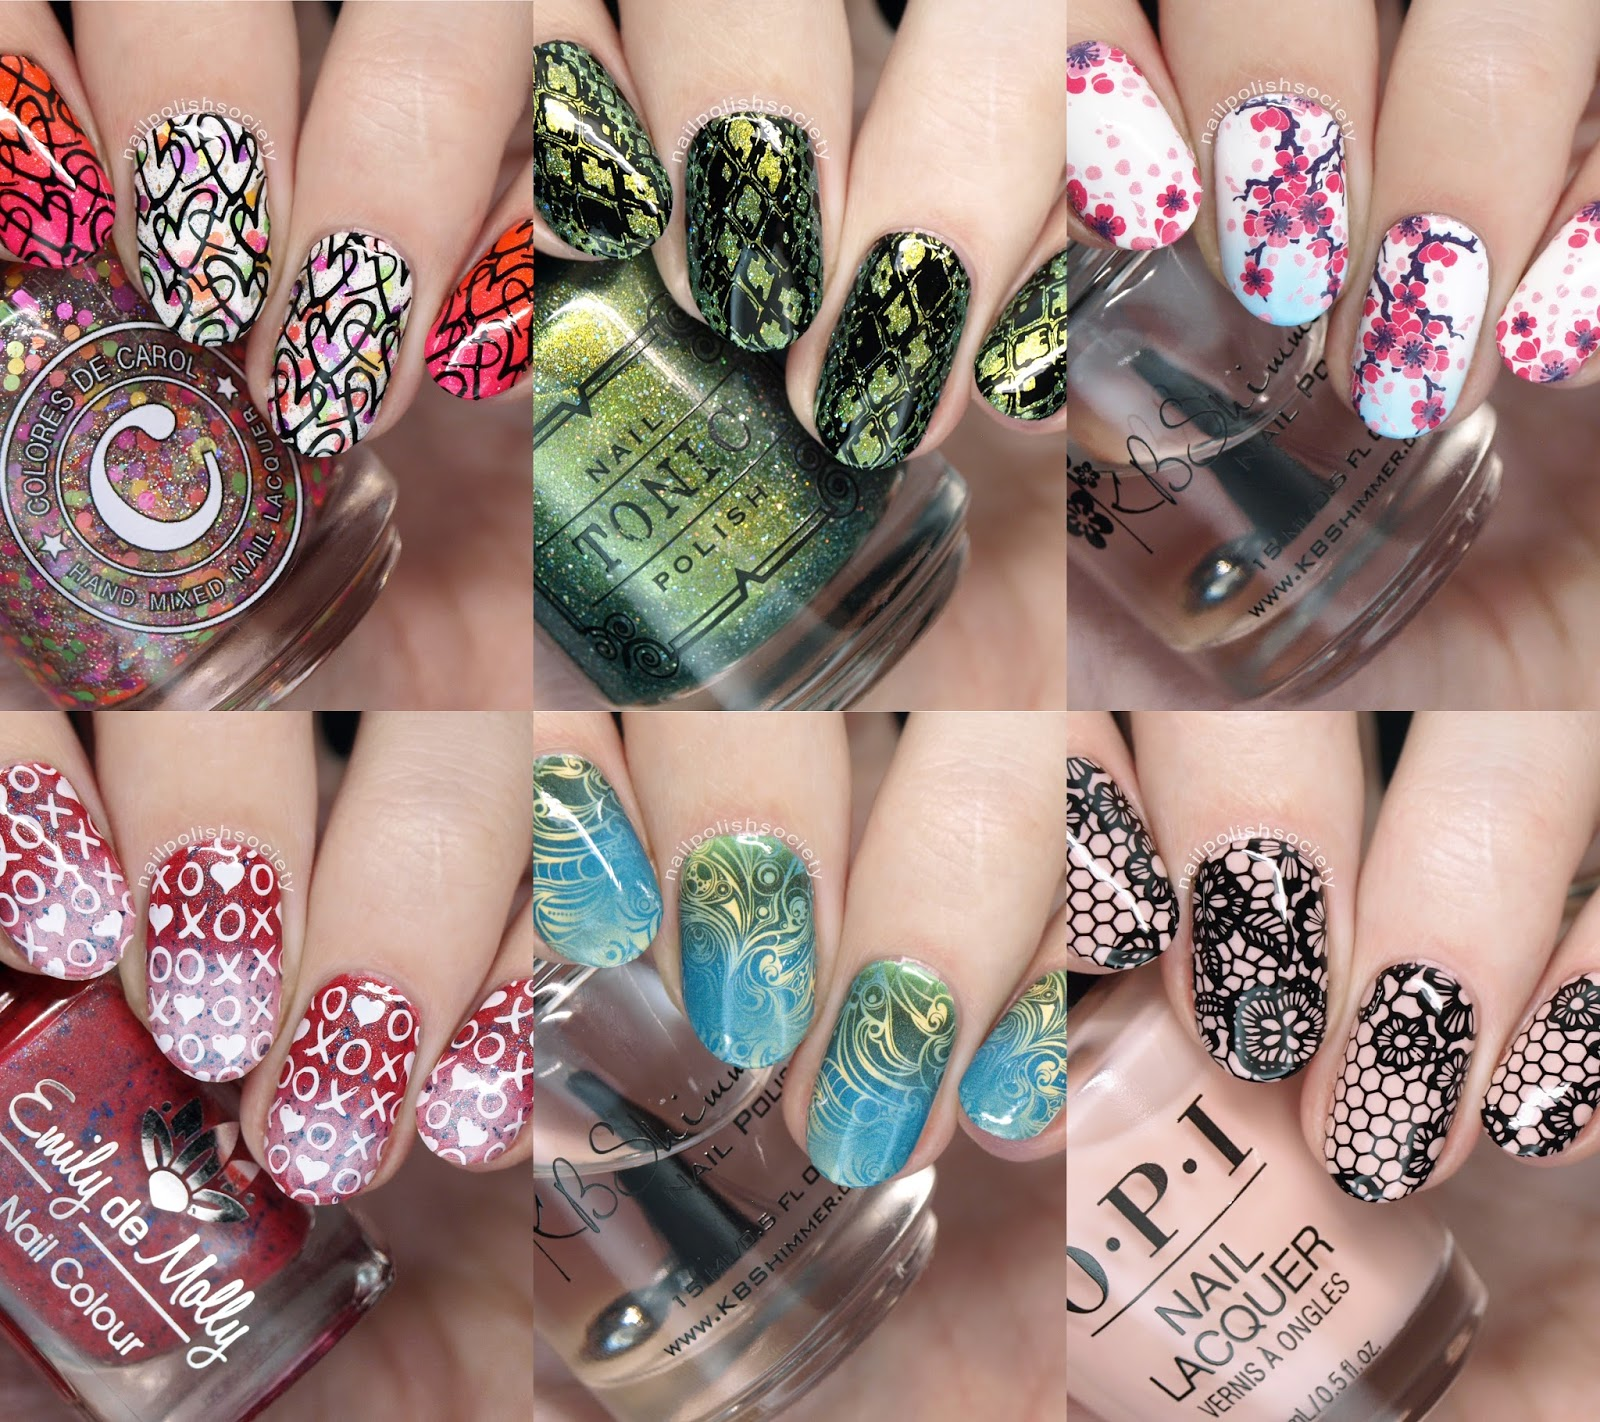 What S Up Nails Stamping Plates And Water Decals Review